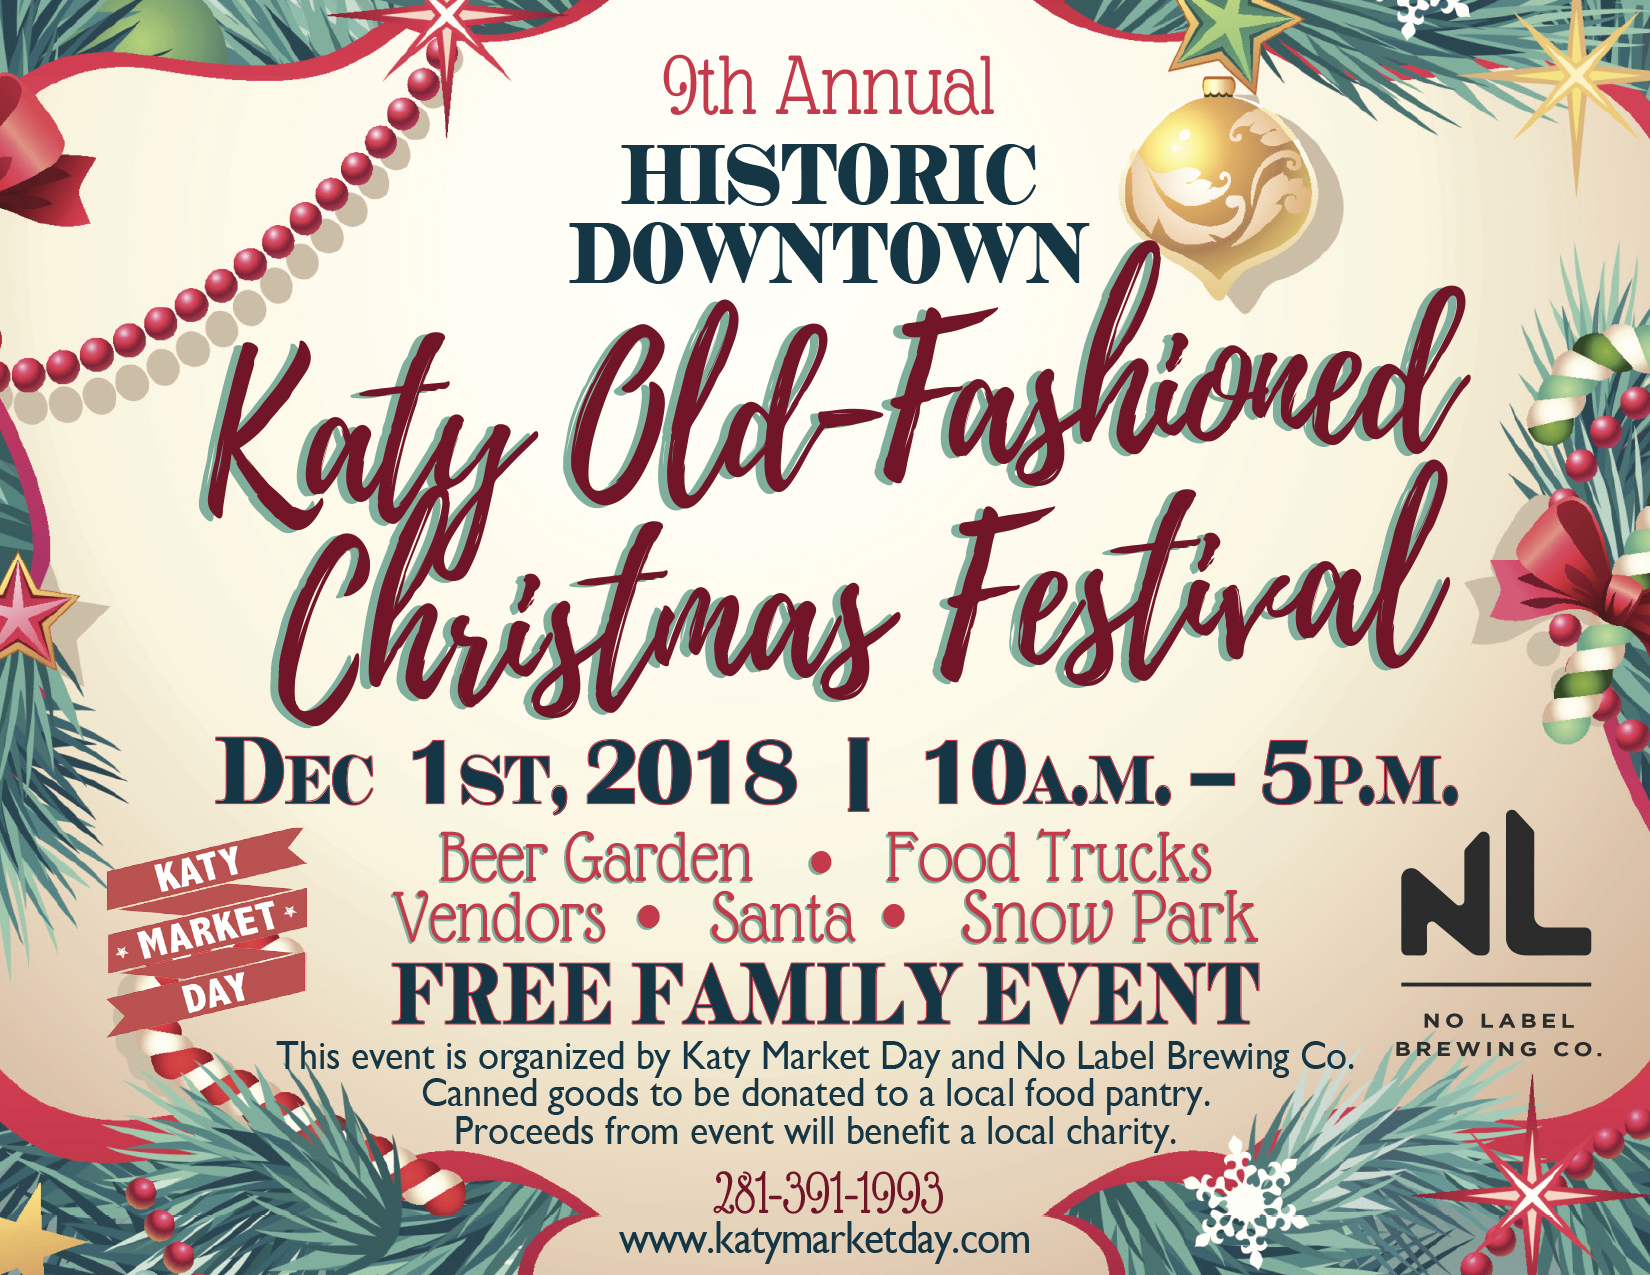 christmas festival 2018 katy market day - Christmas Day 2018